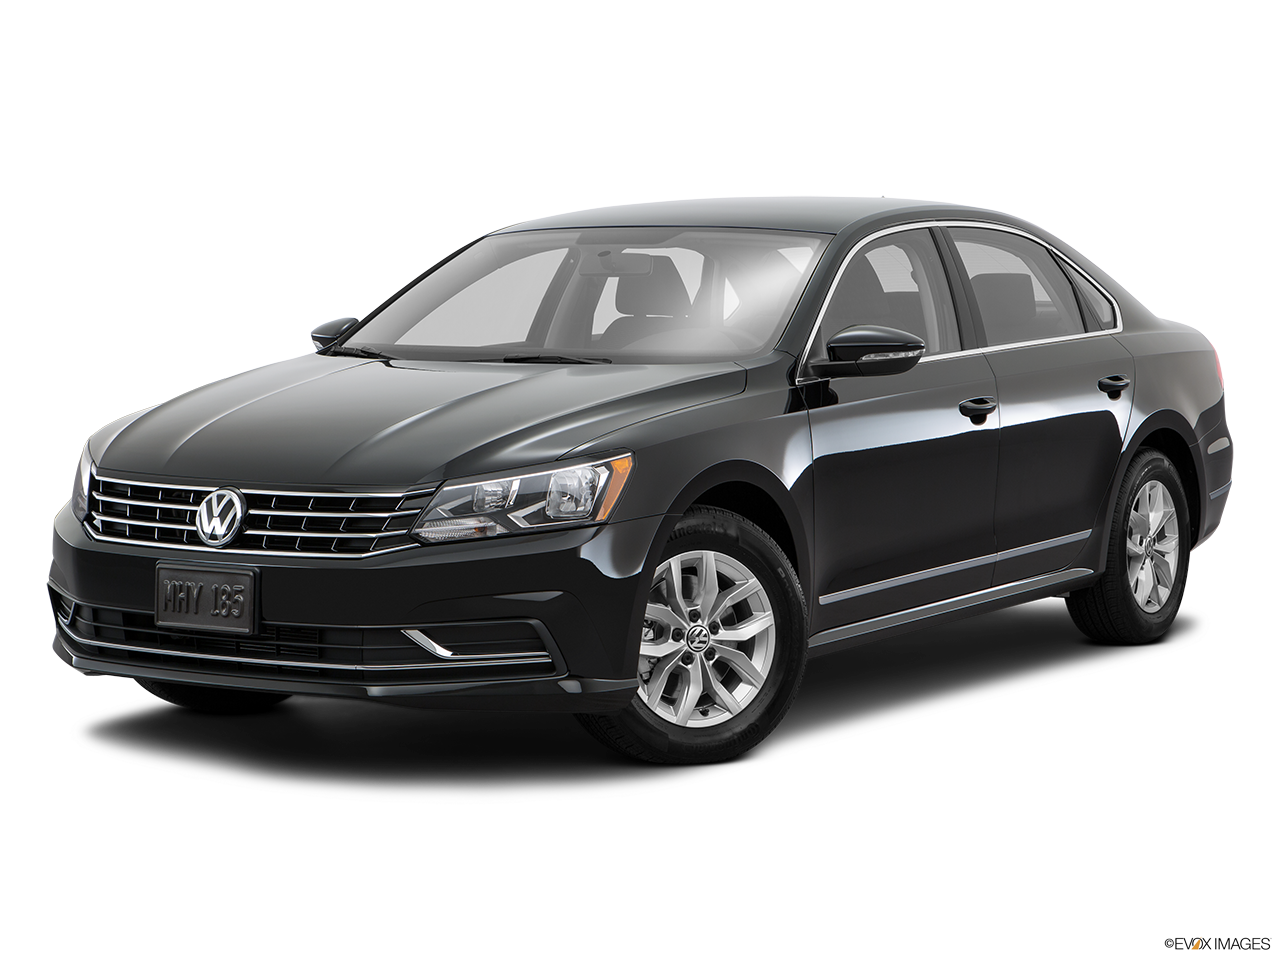 2016 Volkswagen Passat dealer serving Nashville | Hallmark Volkswagen at Cool Springs